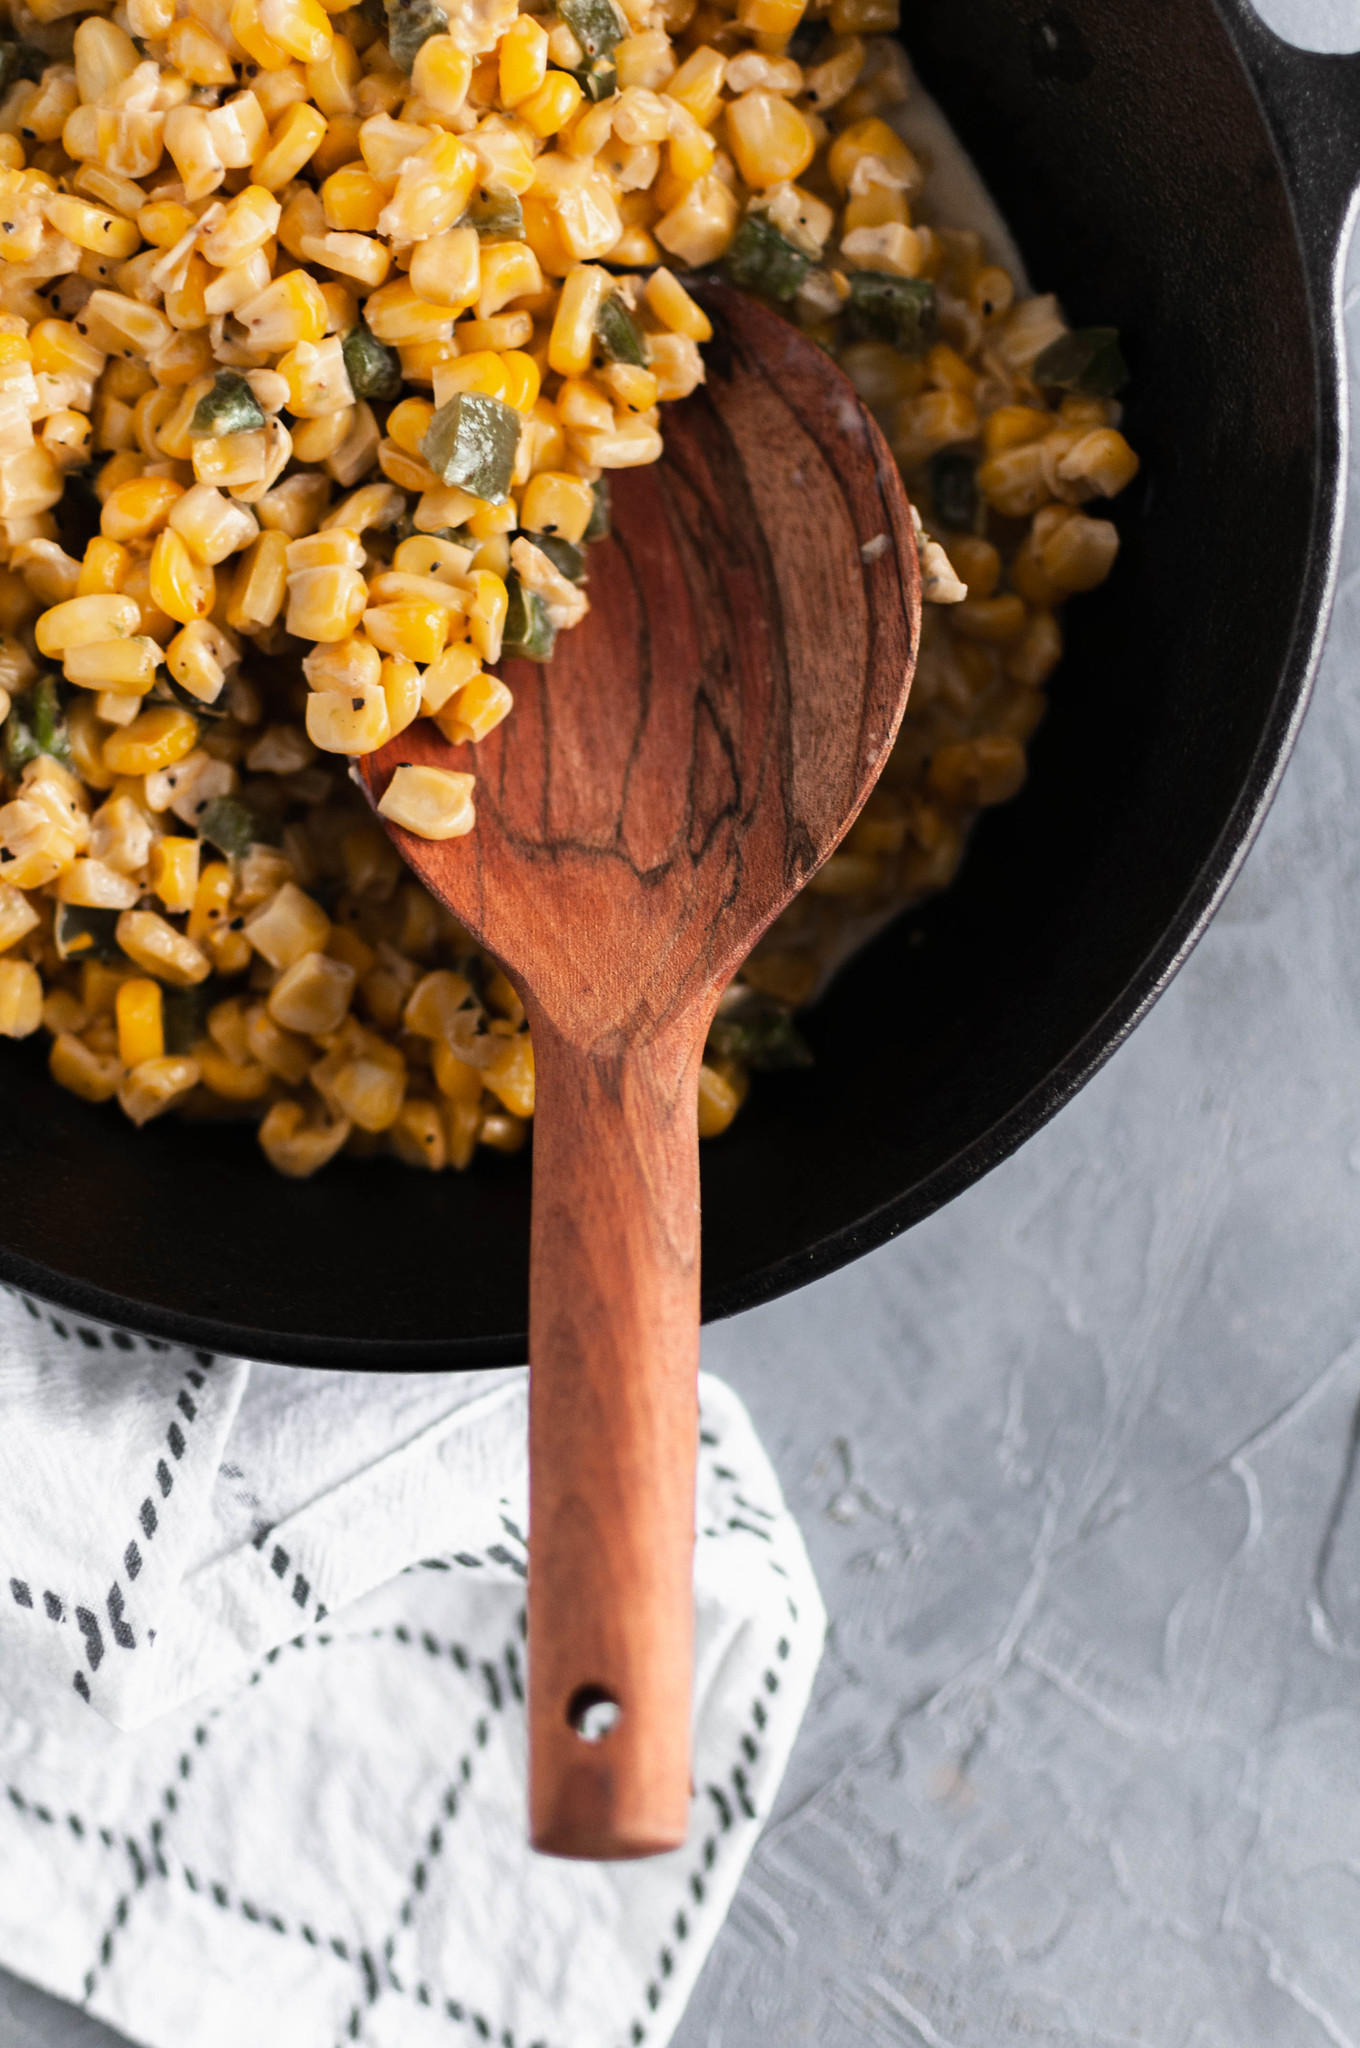 This Jalapeno Cream Corn is slightly spicy, a little sweet and perfectly creamy. It makes a great weeknight side dish or simple holiday option. Made on the stove top with frozen sweet corn, fresh jalapenos, butter and half and half. Ready to serve in minutes.